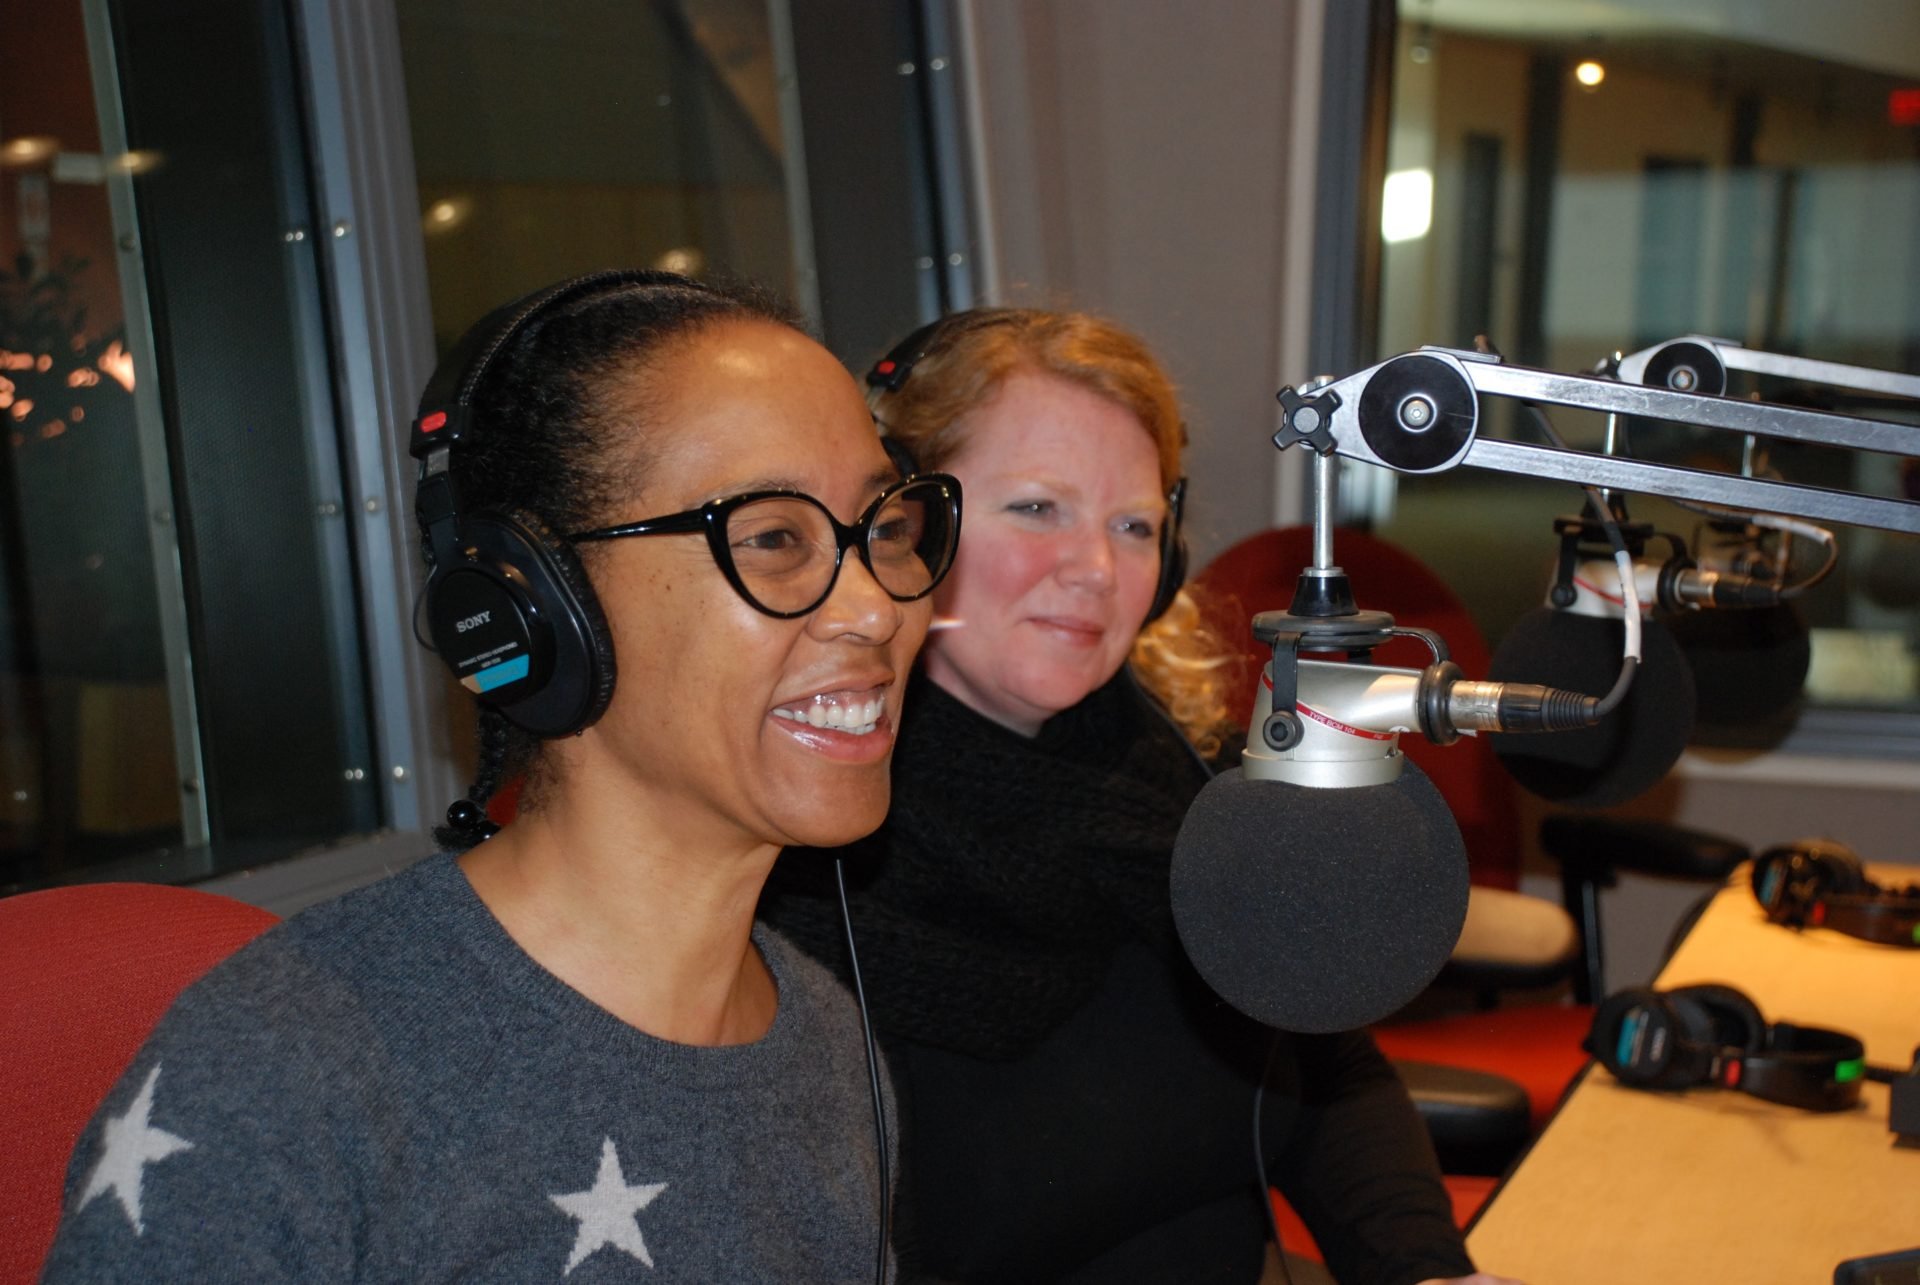 Artist Sonya Clark (left) and Amy Moorefield, Director of the Phillips Museum (right) appear on Smart Talk on January 24, 2020.